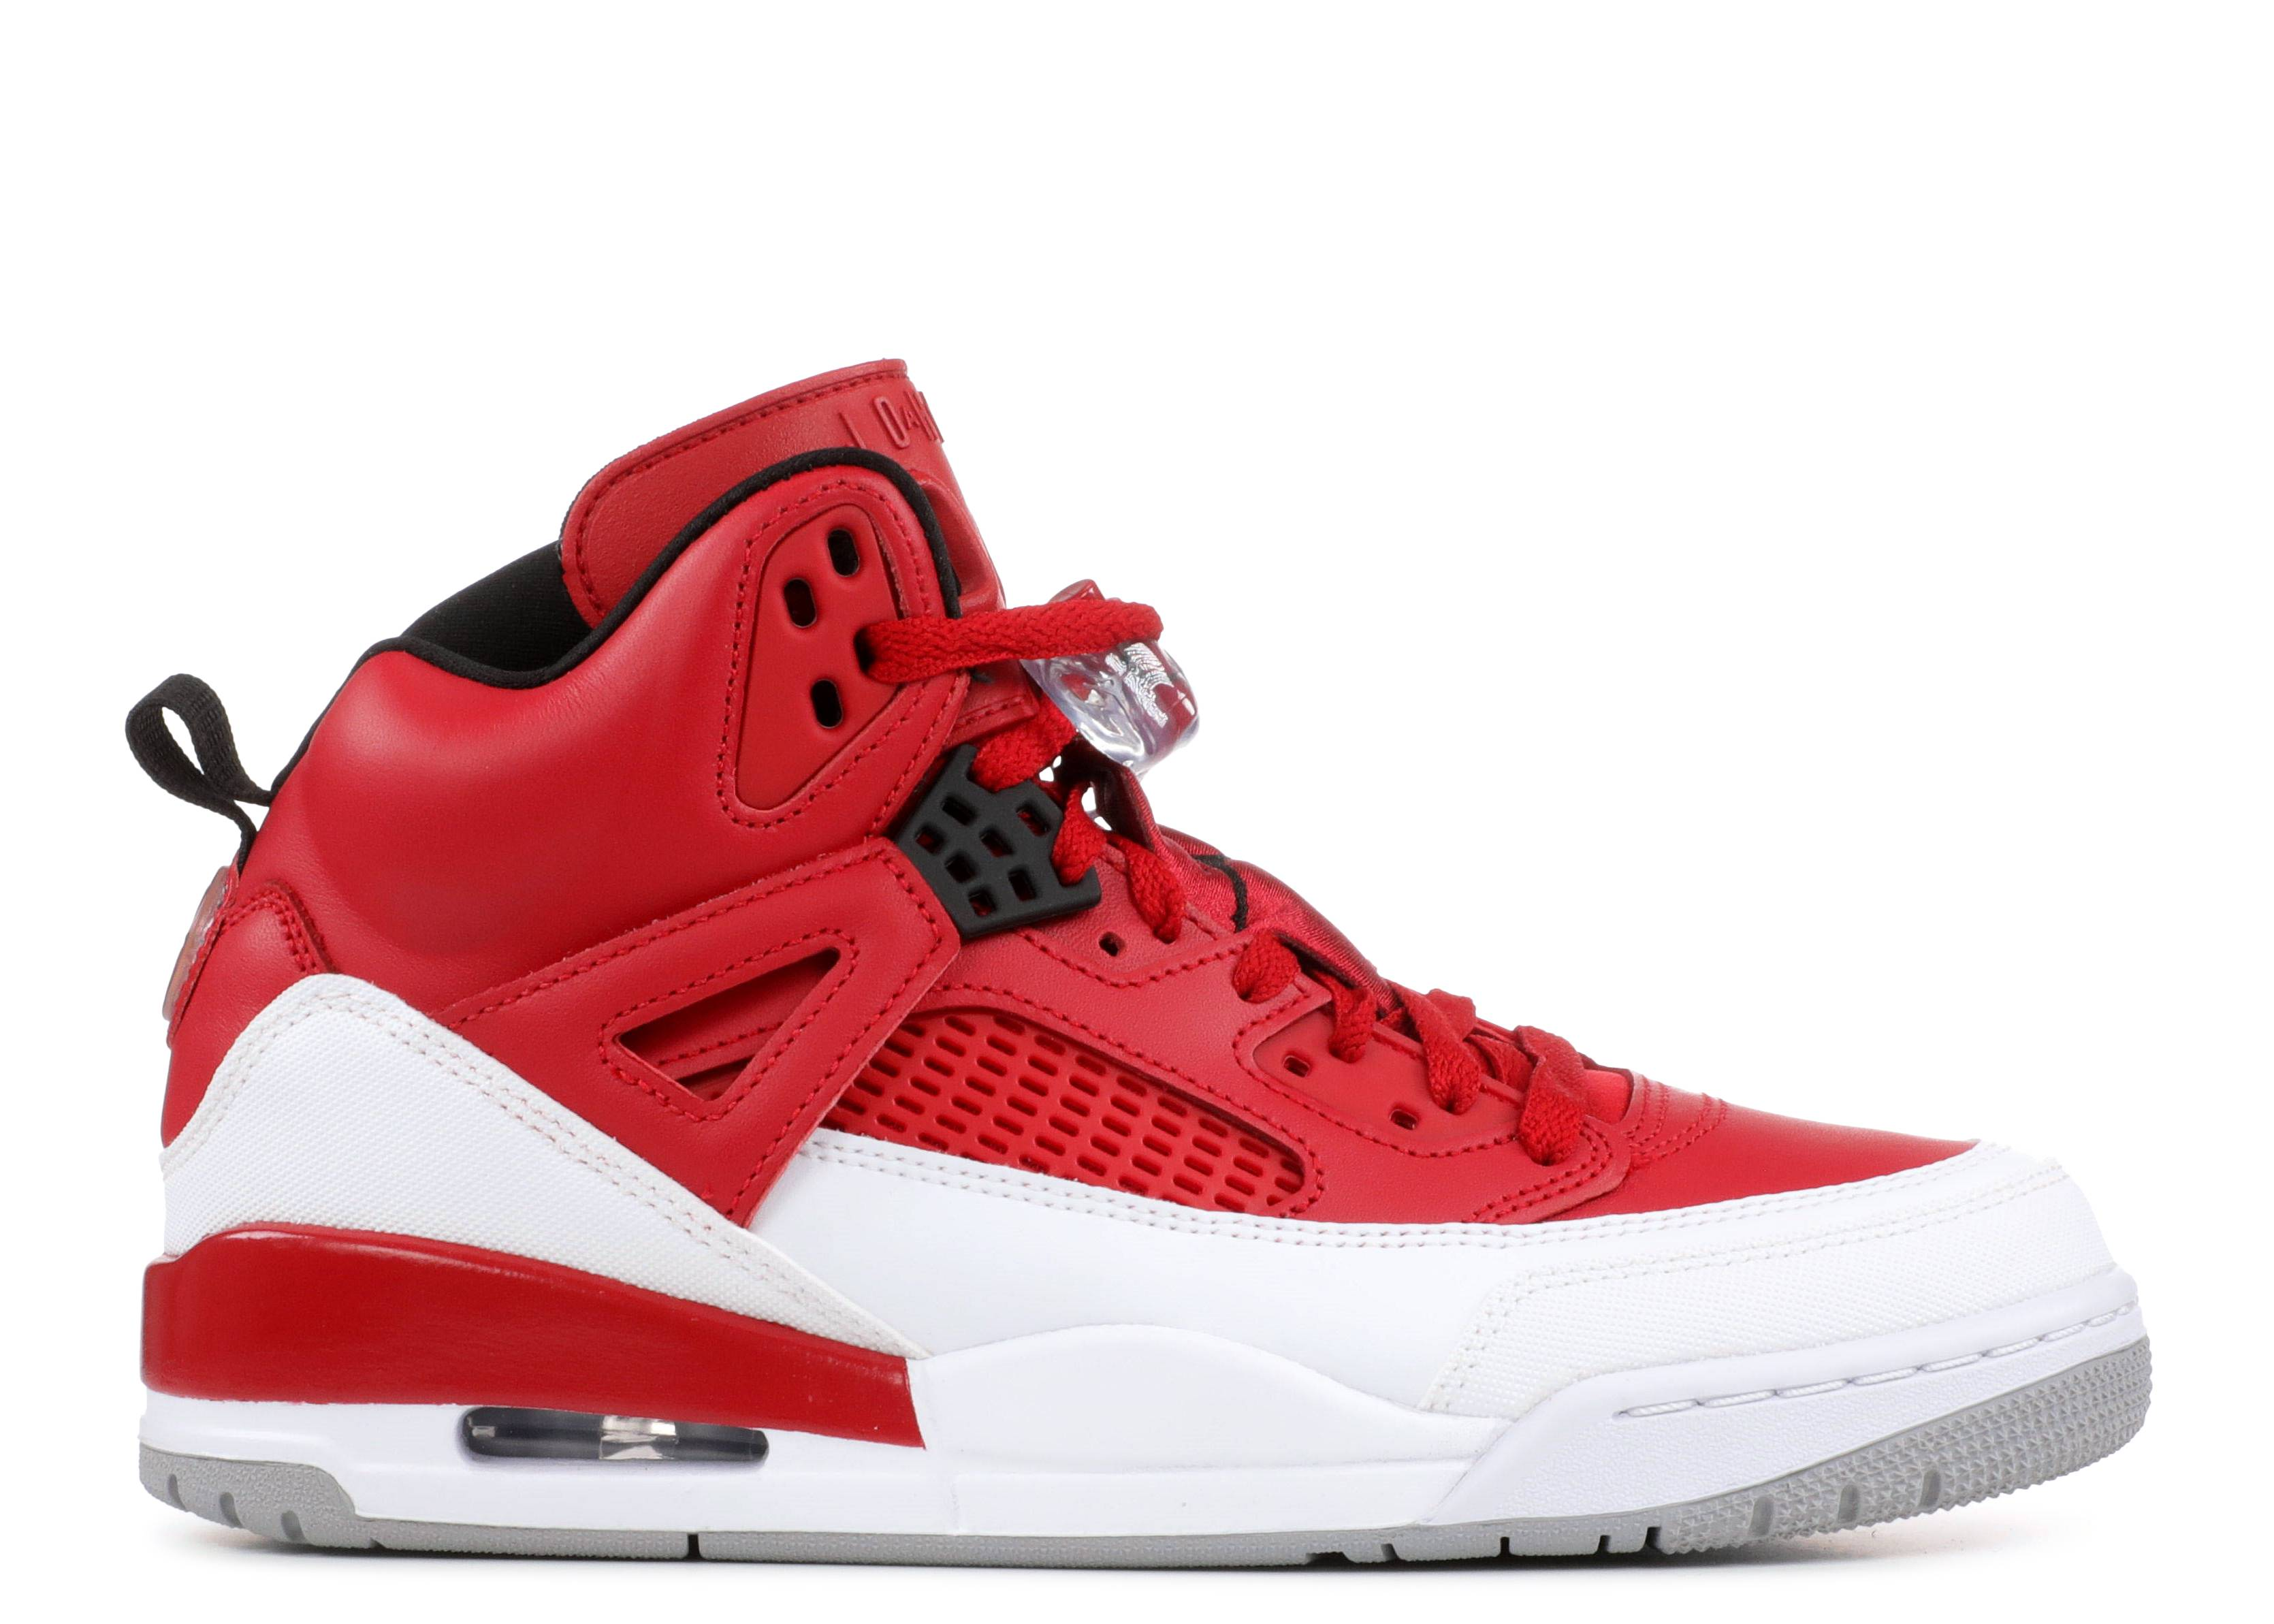 finest selection f290d 37b1b Jordan Spizike - Air Jordan - 315371 603 - gym red black-white-wolf ...